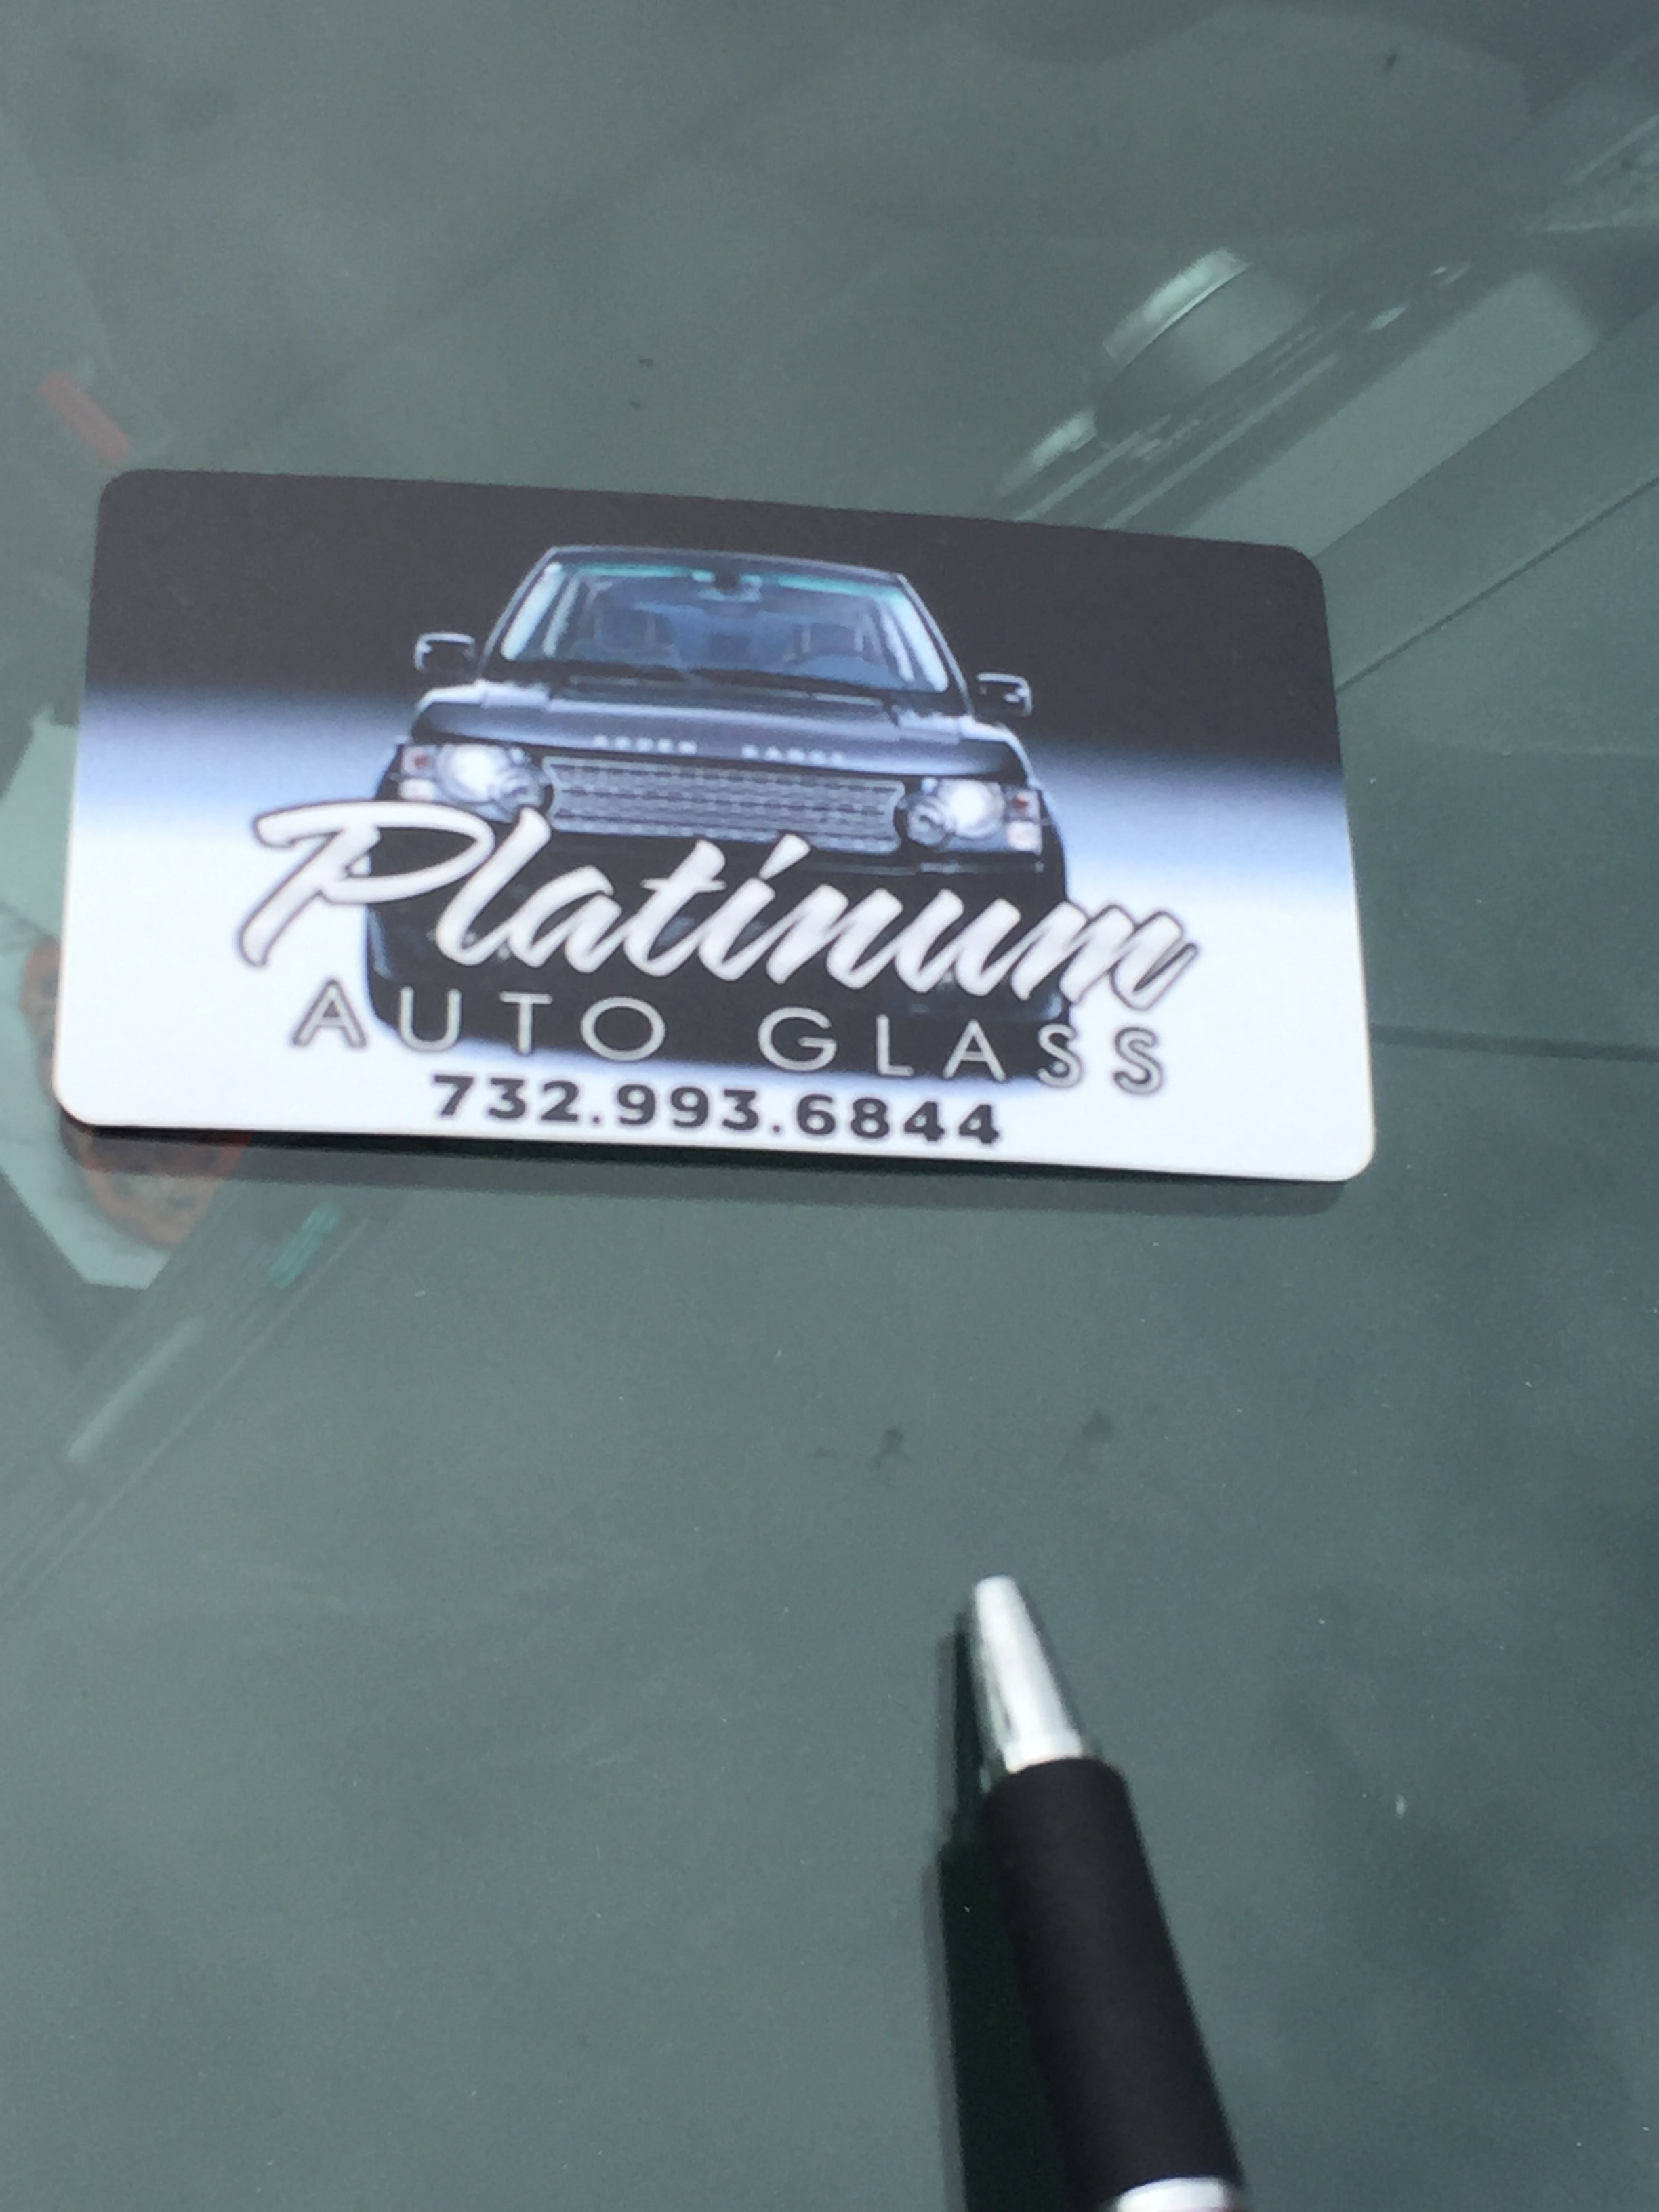 Automobile Windshield Stone Chip Repair done same day in New Jersey area by Platinum Auto Glass Repair New Jersey @platinumautoglassnj.com